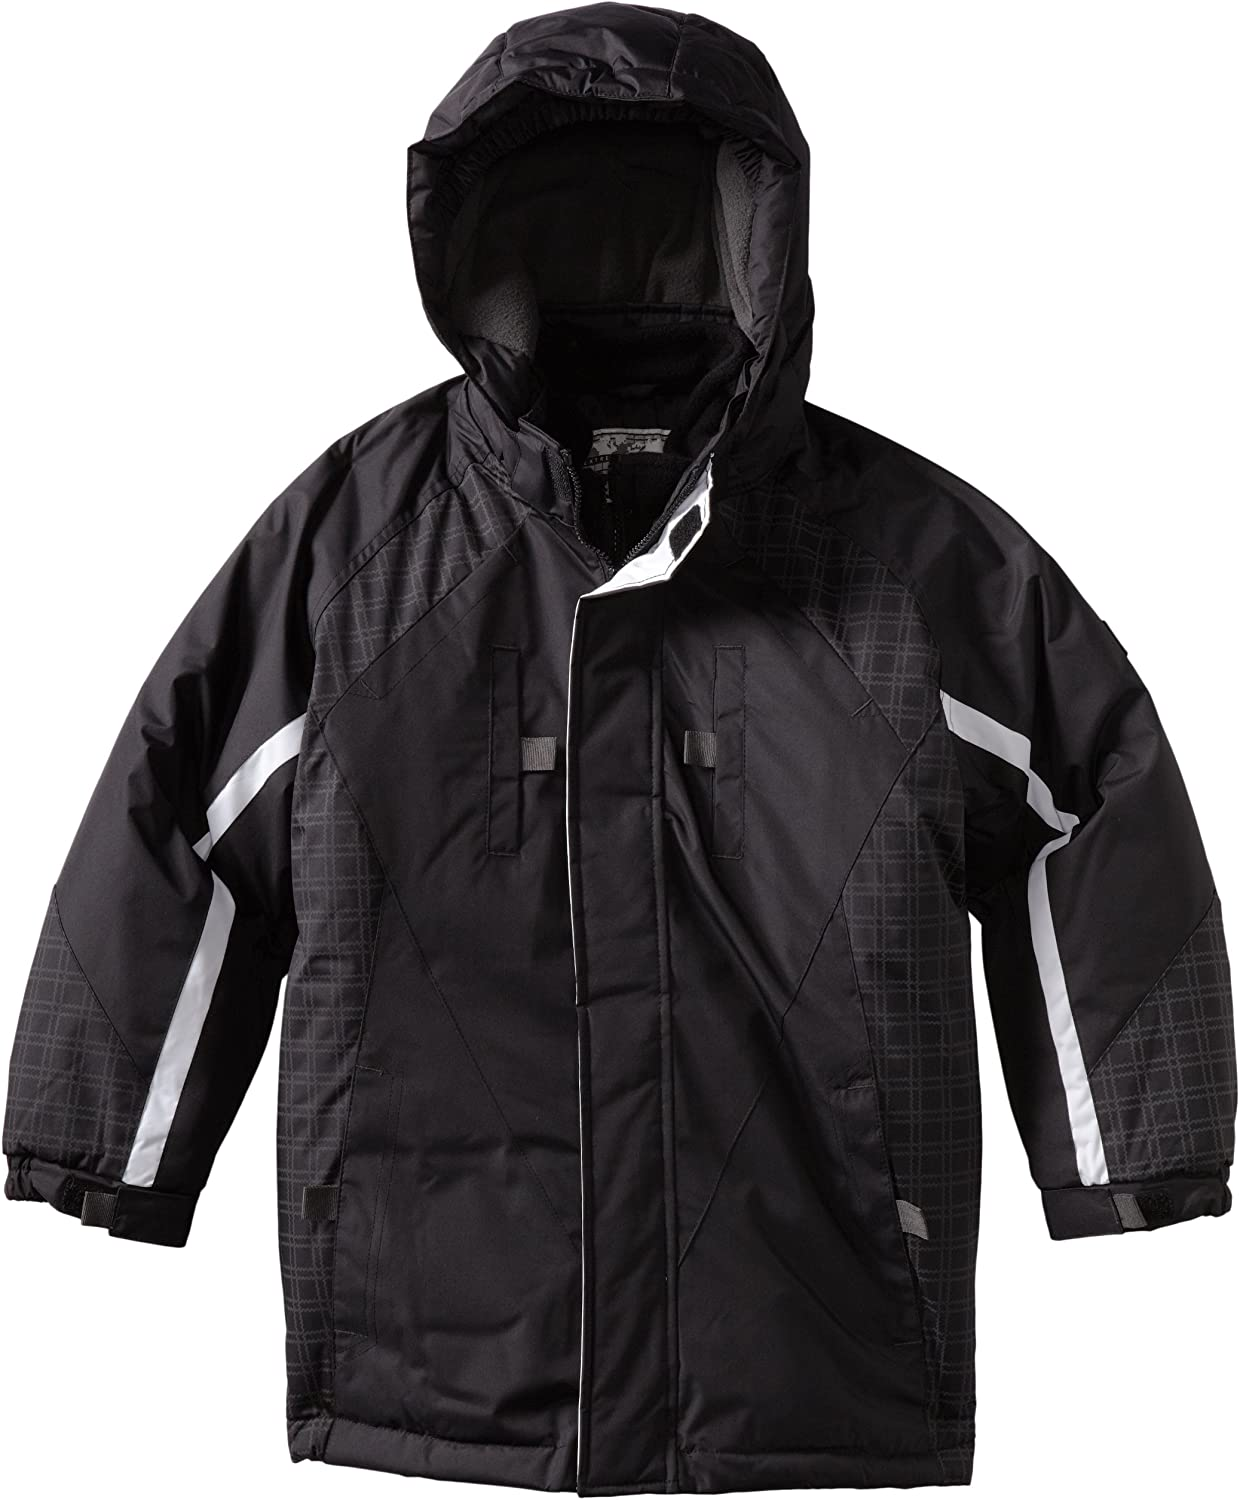 Rothschild Big Boys' Jacket with Plaid Insert And Vestee